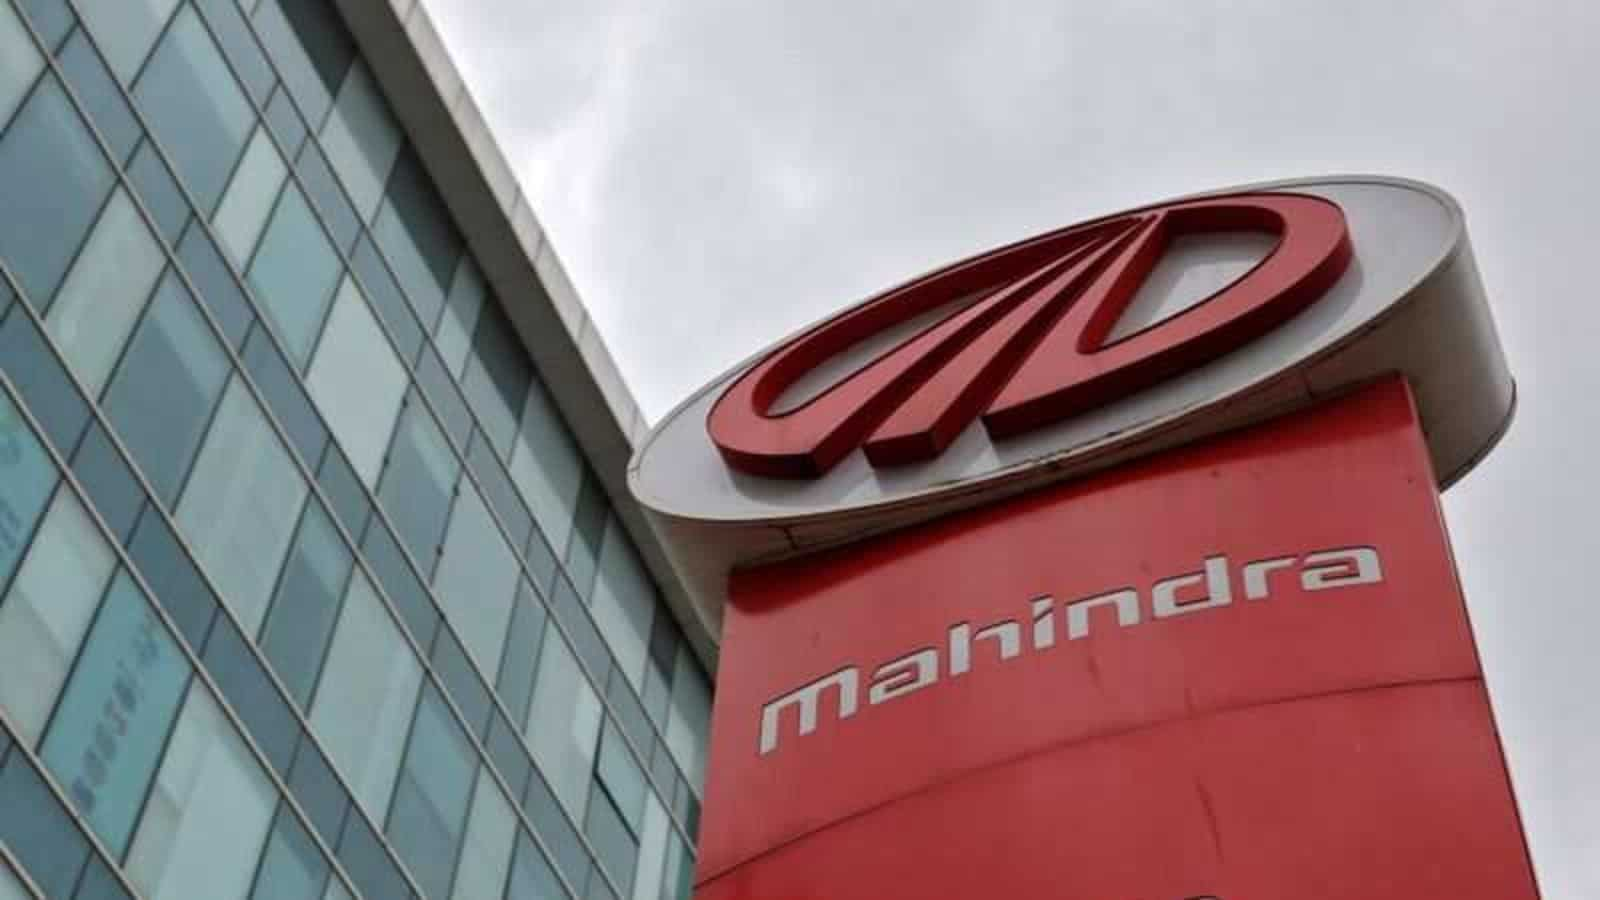 Mahindra reaffirms confidence in South African market with new plant